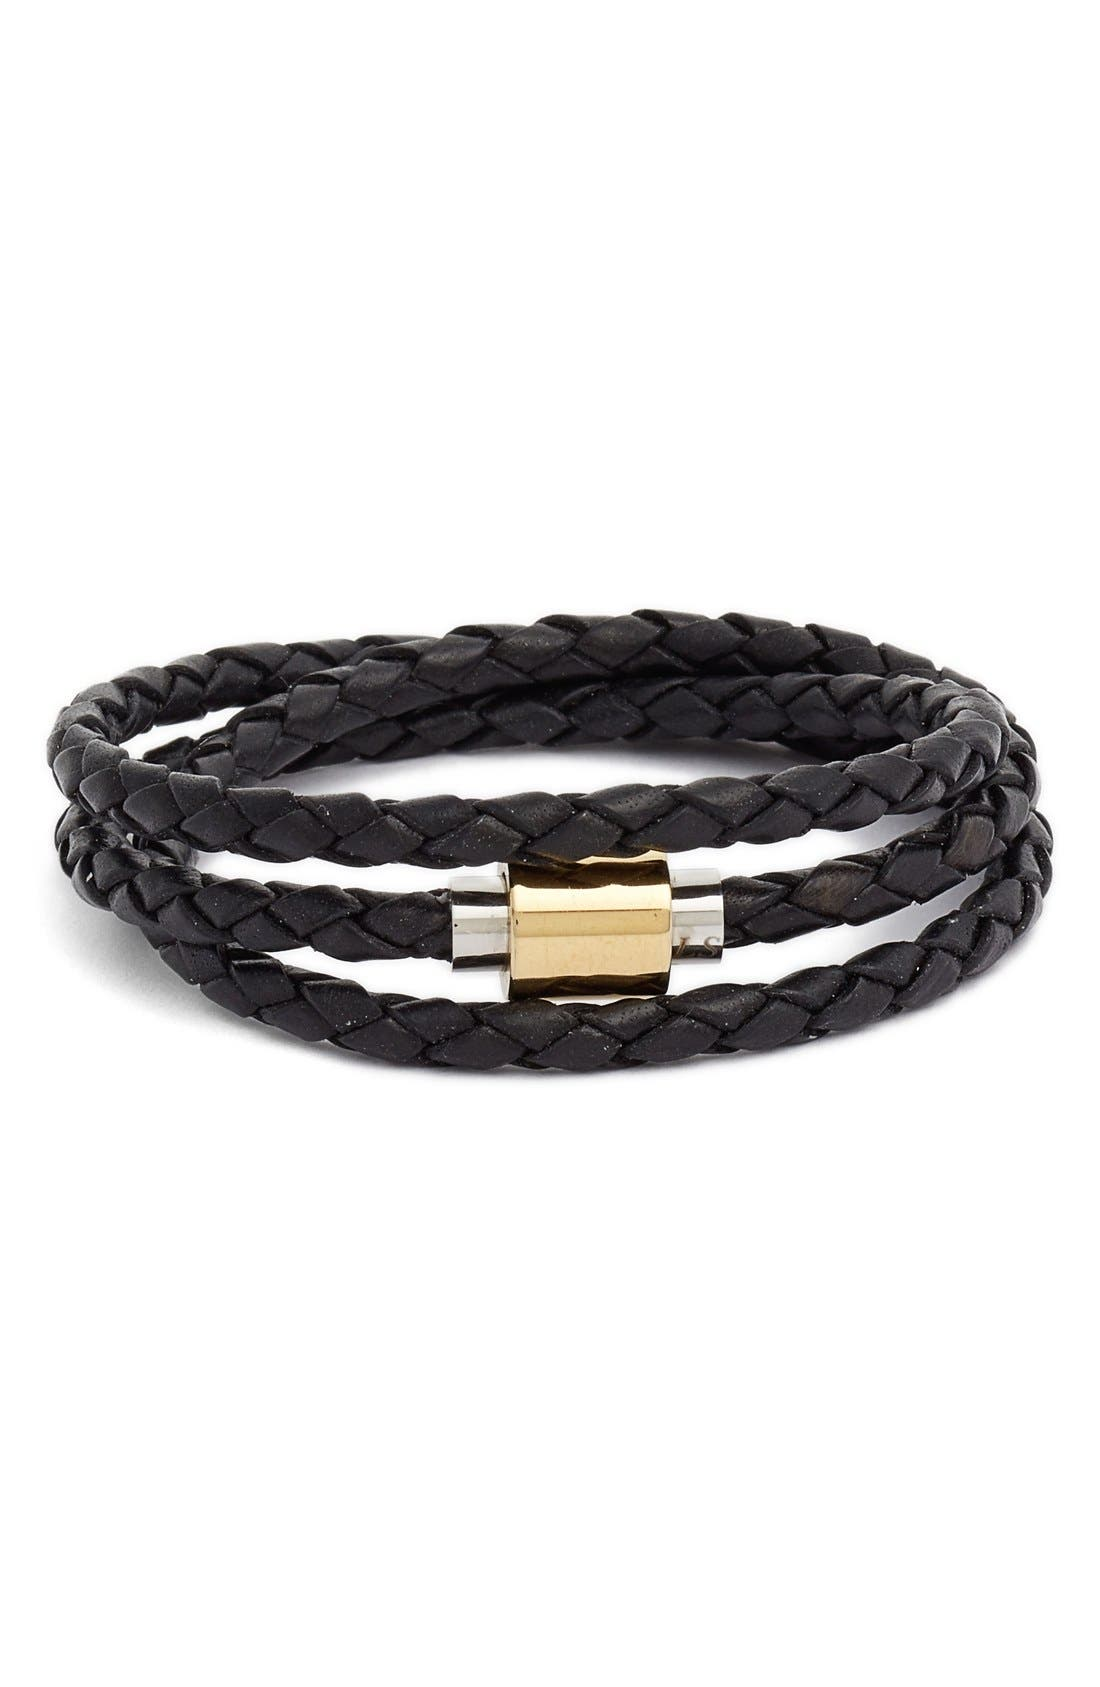 'SOBE Original' Braided Leather Wrap Bracelet,                             Main thumbnail 1, color,                             001